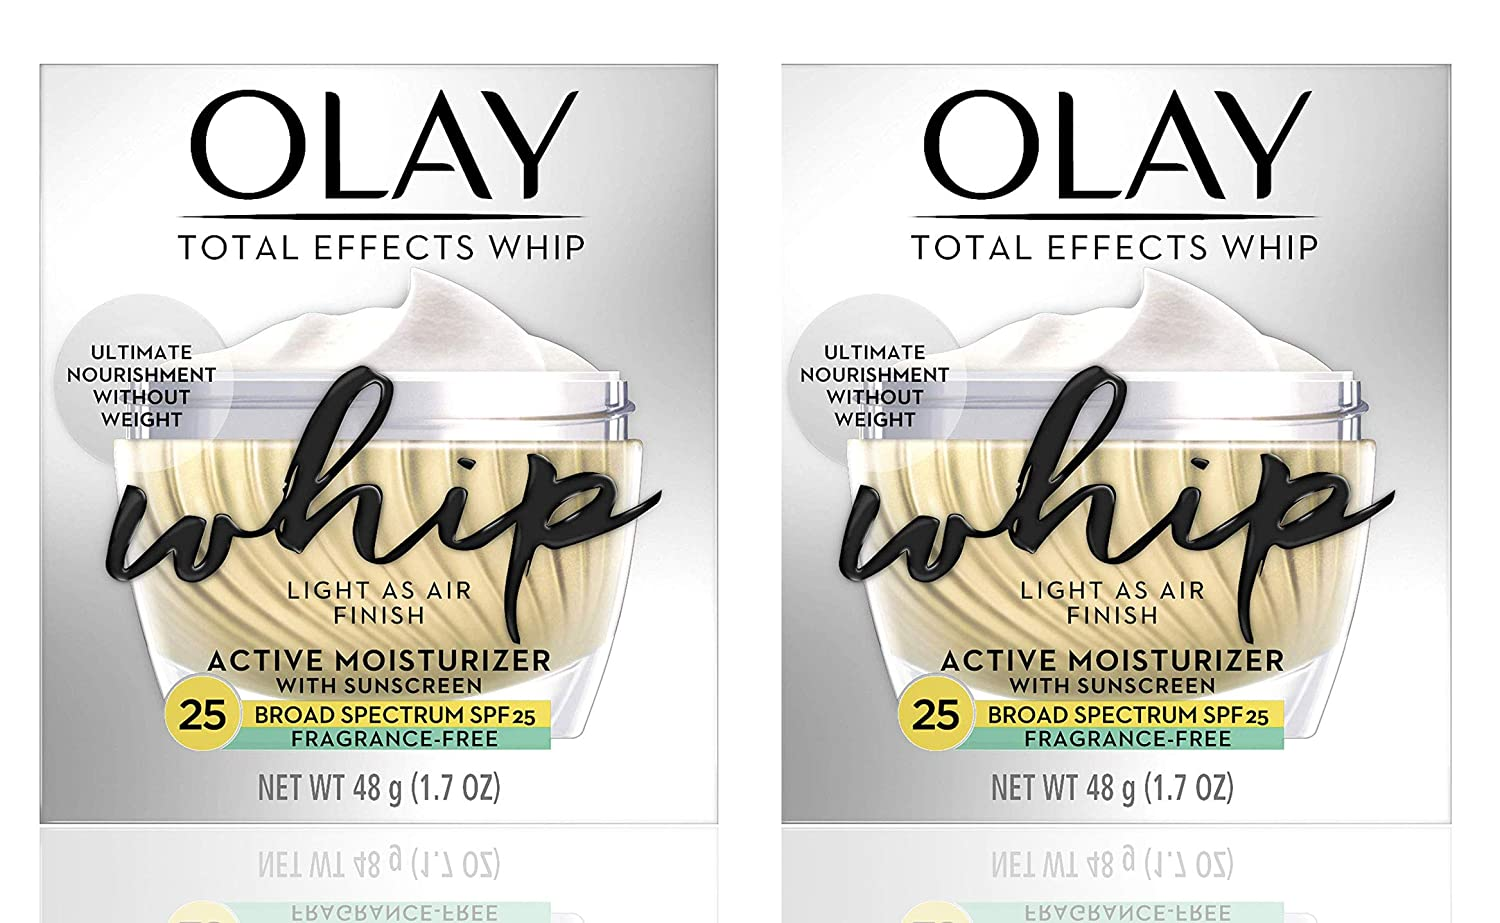 (PACK of 2) ΟΙay TOTAL EFFECTS WHIP, Active Moisturizer - FRAGRANCE FREE - with SUNSCREEN Broad Spectrum SPF 25-1.7 Oz (48 g) EACH - Light as Air Finish